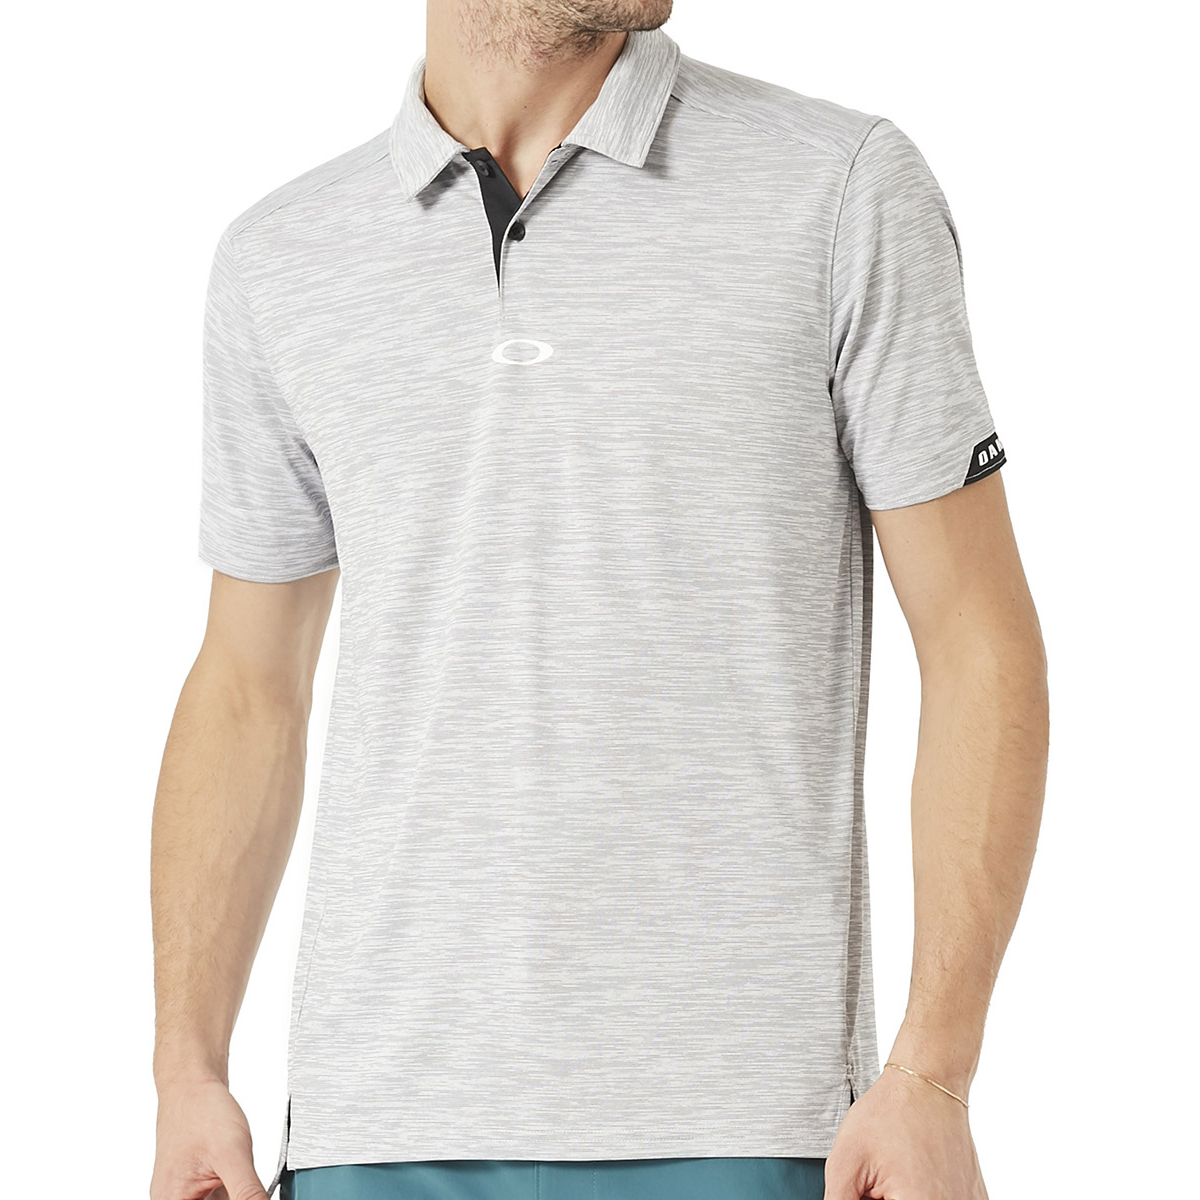 93765d4ef1a Oakley Gravity Polo Shirt from american golf